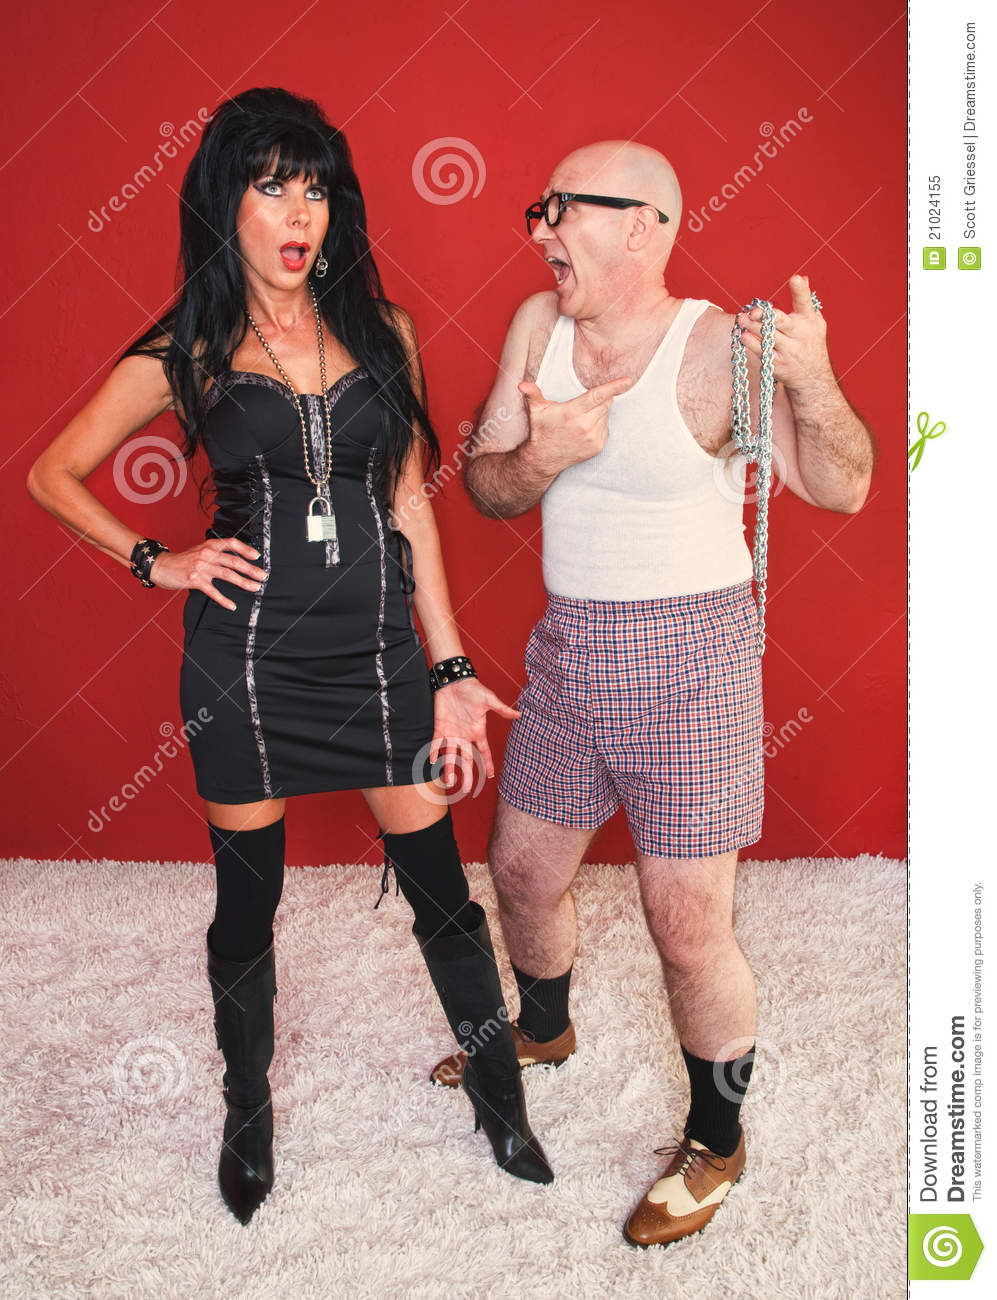 Download Annoyed Dominatrix And Client Stock Image - Image of gothic, isolated: 21024155